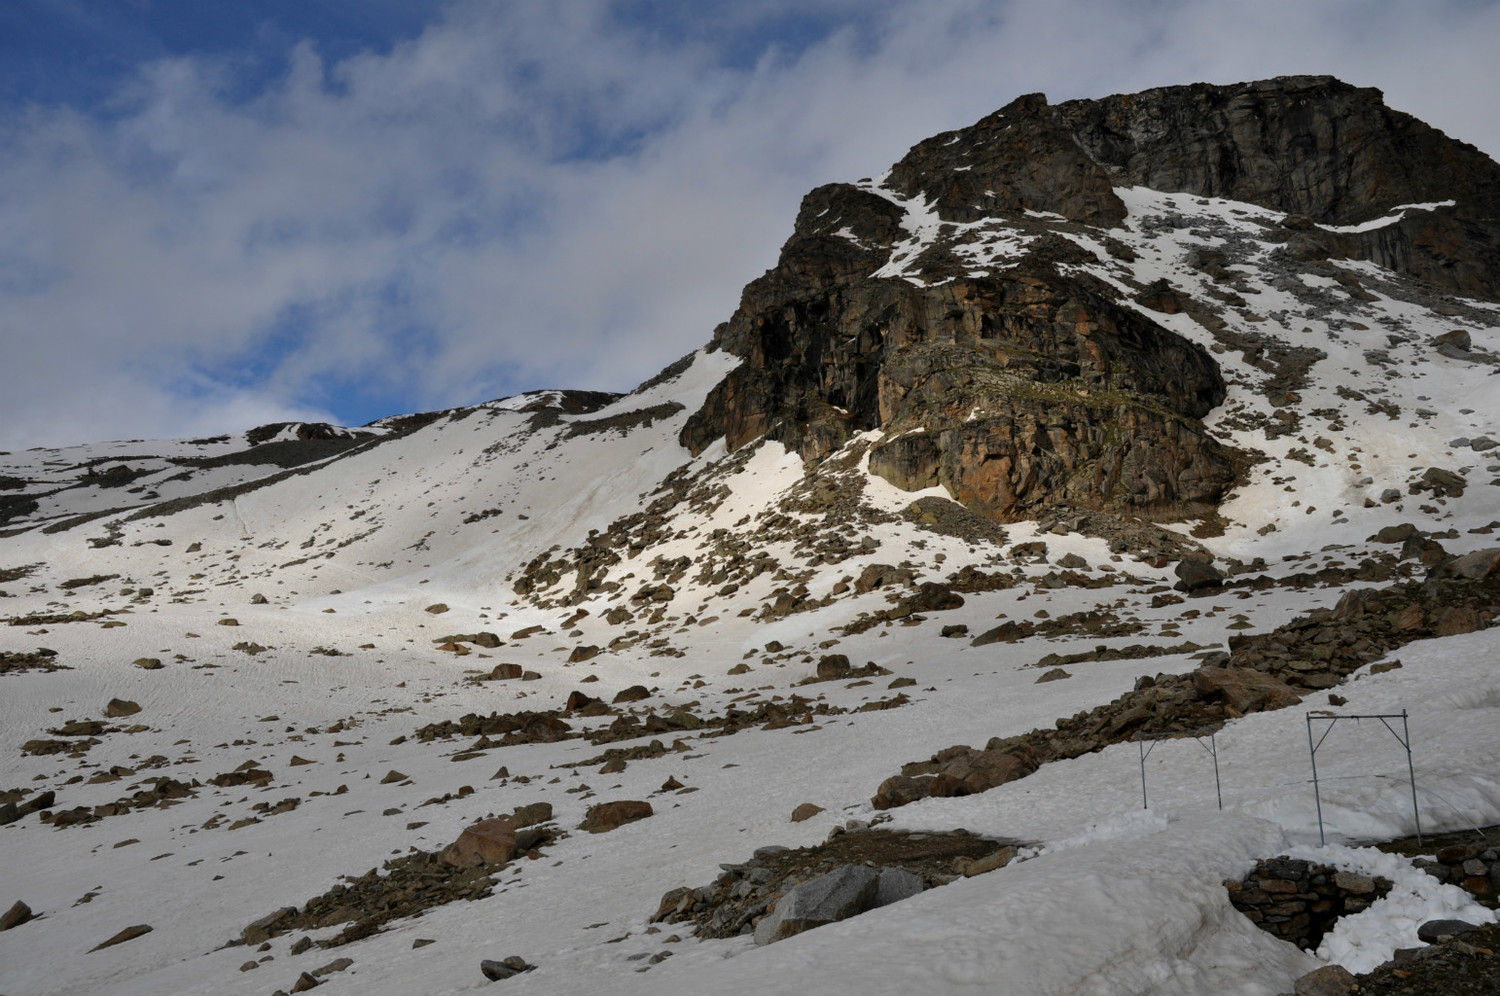 Gran Paradiso - Via normale : the tracks immediately above Rif. Vittorio Emanuele II